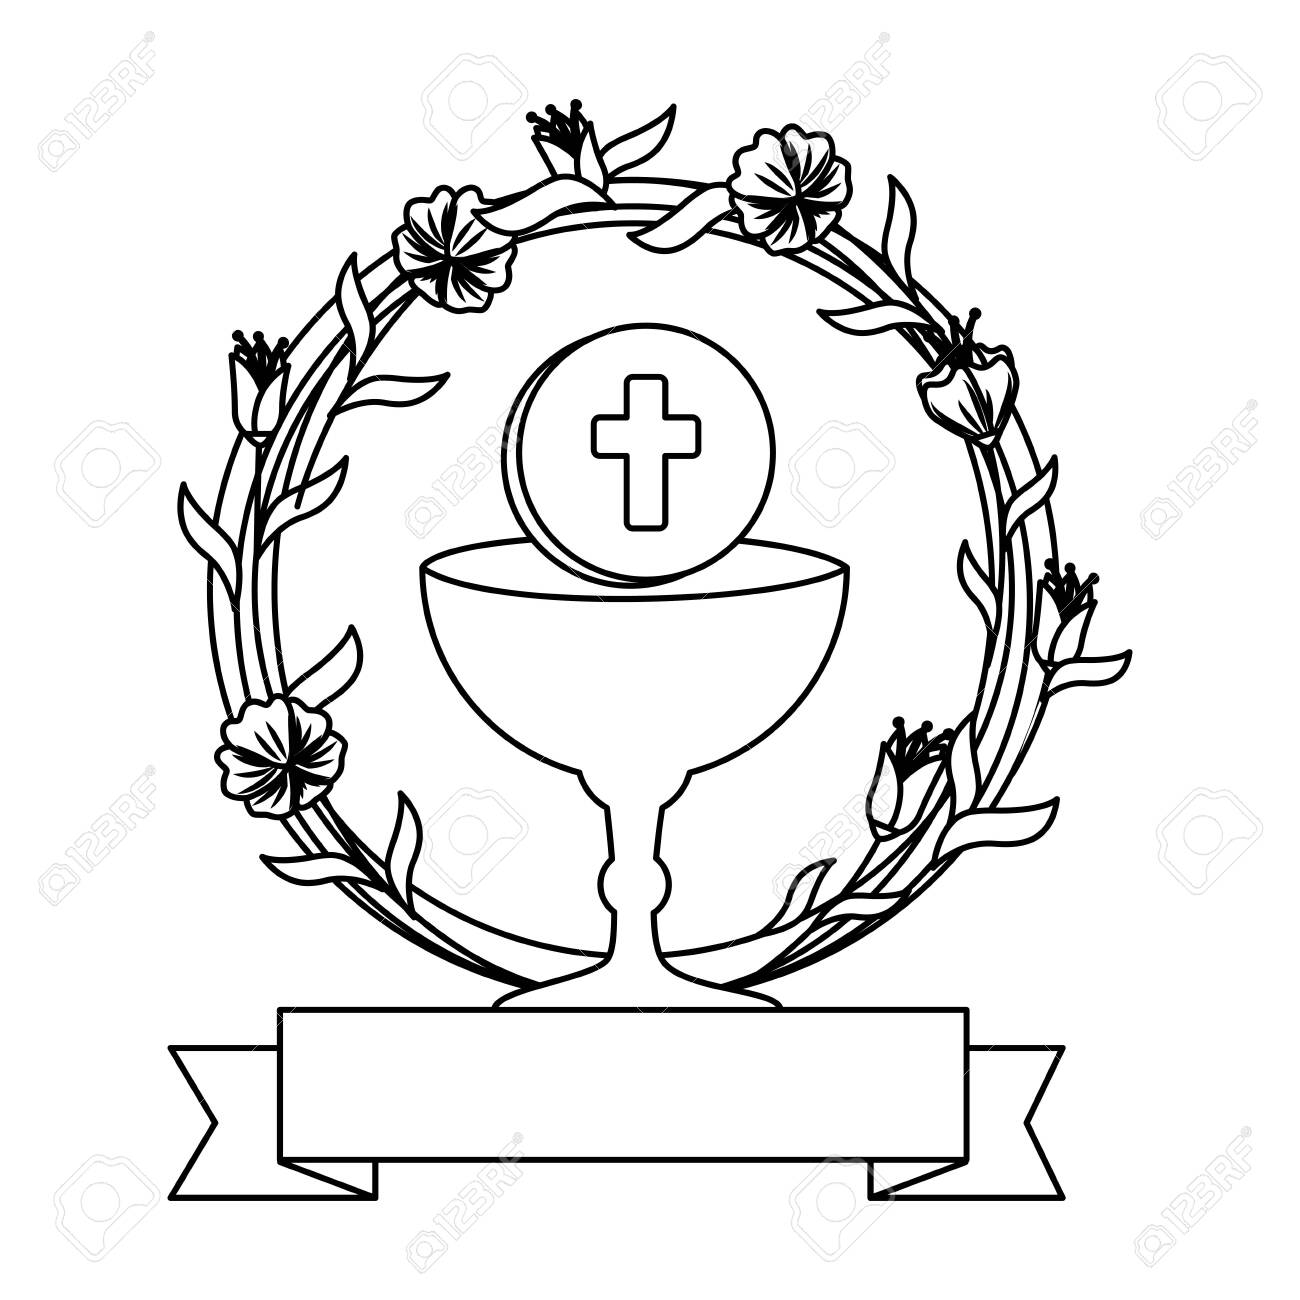 first communion in chalice with floral crown vector illustration design - 124587547